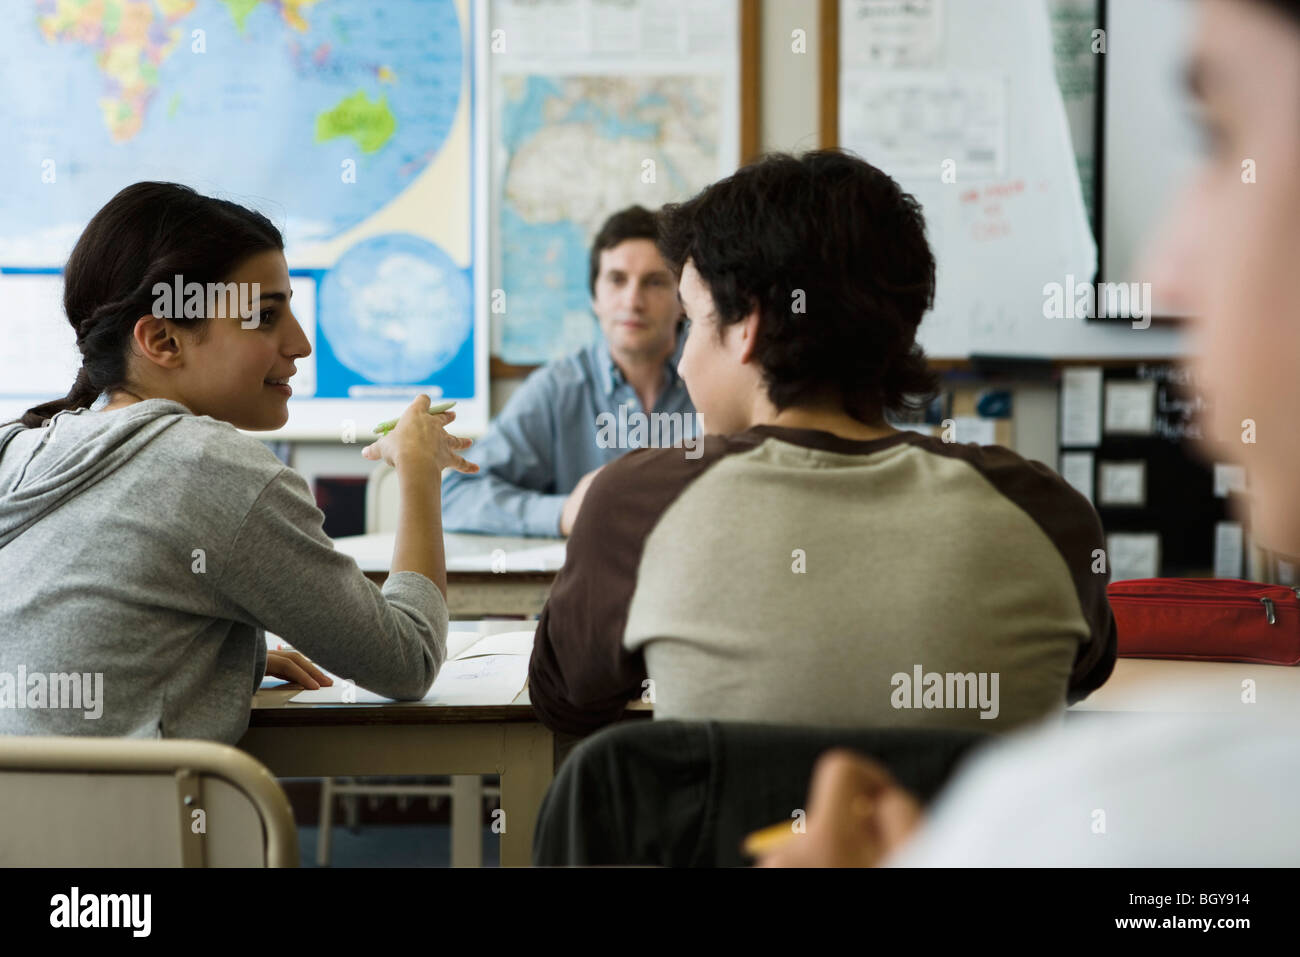 High school student speaking with classmate in class - Stock Image